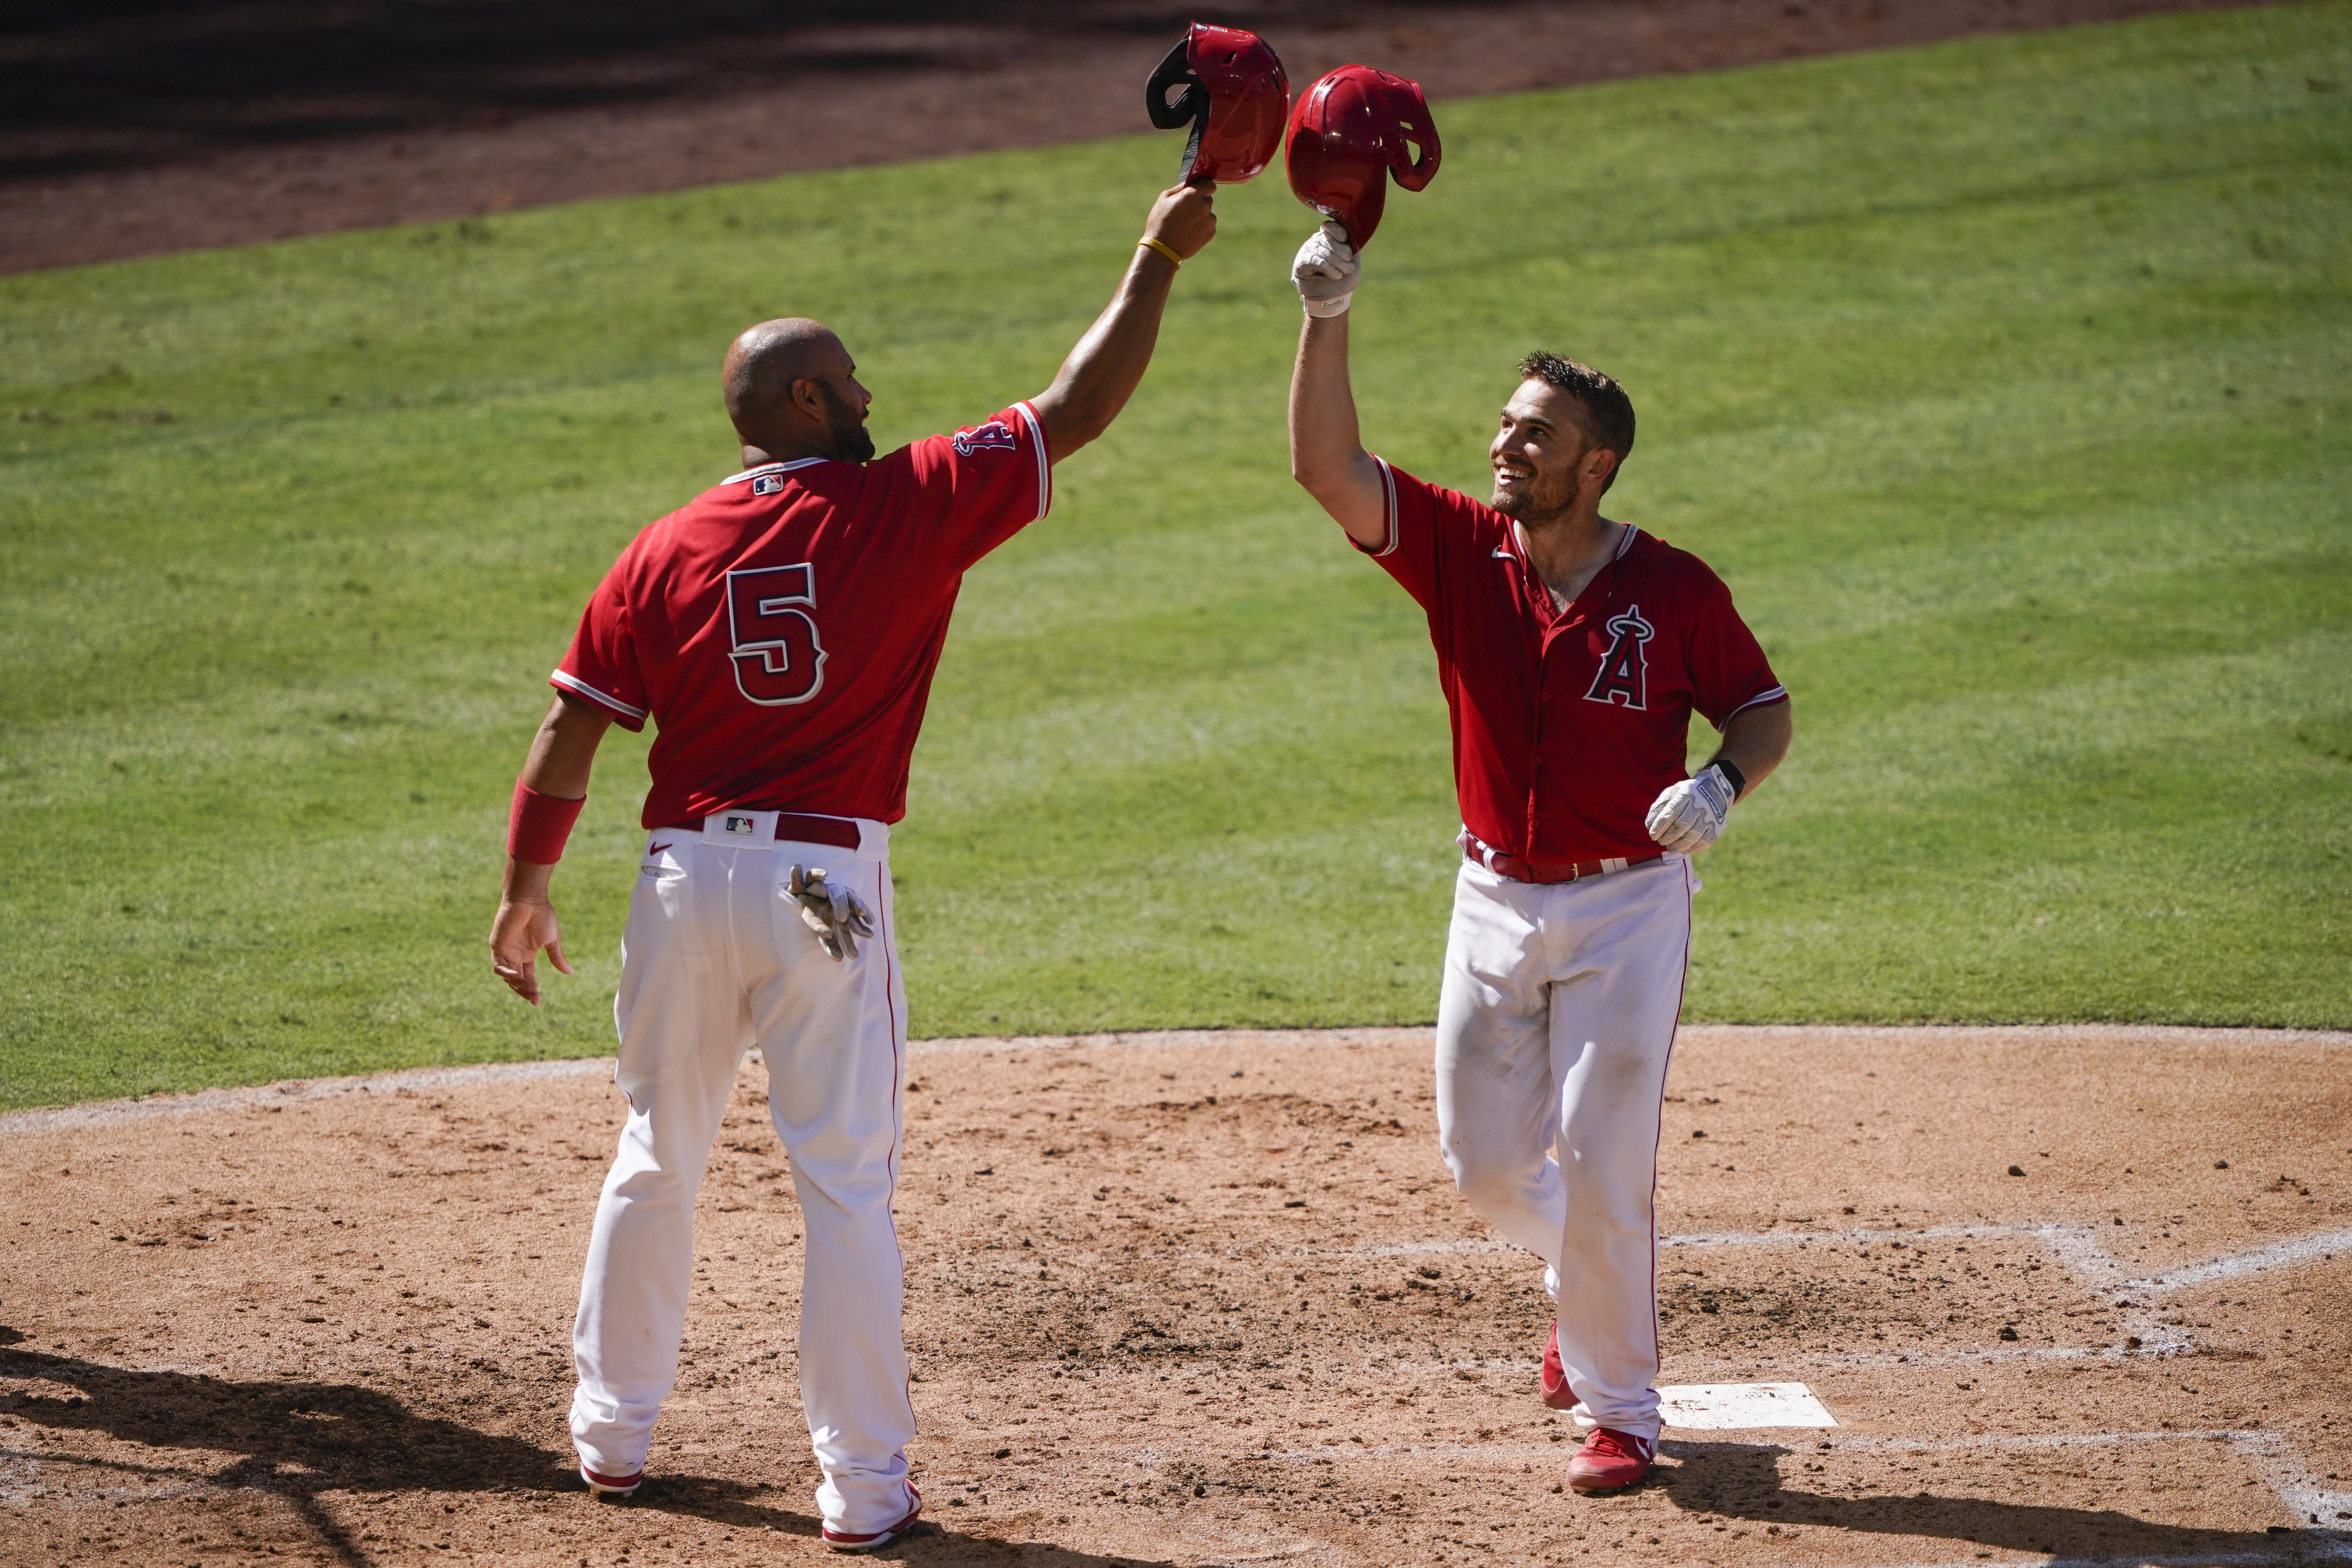 Los Angeles Angels first baseman Albert Pujols, left, hits helmets with catcher Max Stassi after Stassi hit a home run during an intrasquad game at baseball practice at Angel Stadium on Wednesday, July 8, 2020, in Anaheim, Calif. (AP Photo/Ashley Landis)